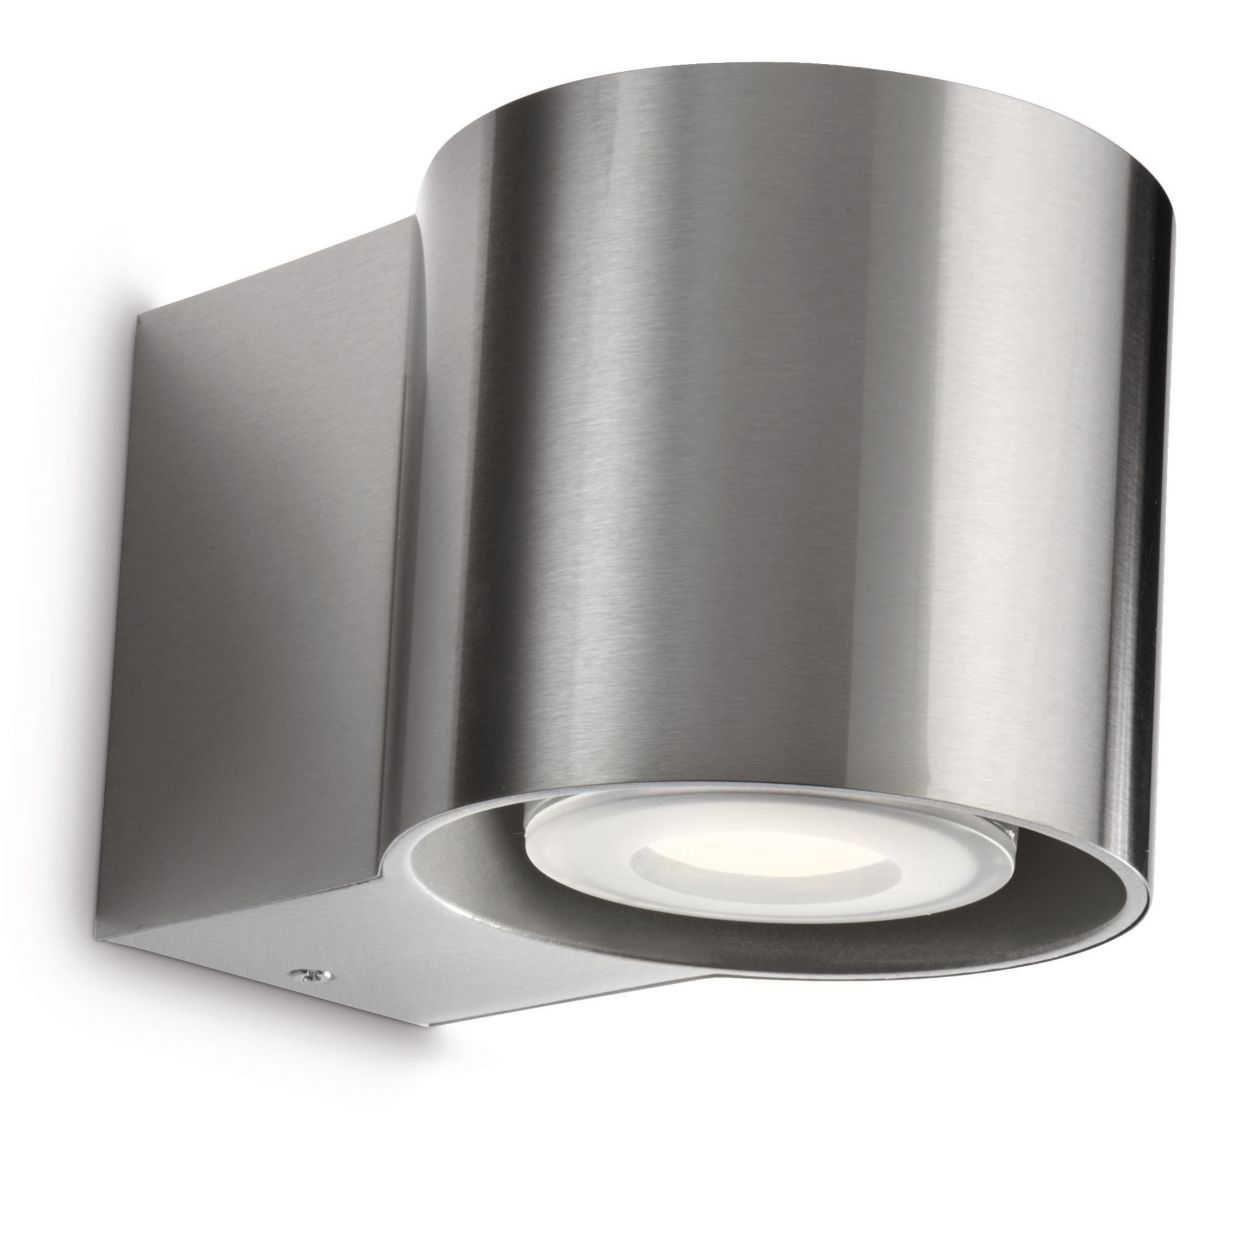 Philips Solar Wall Lights : Wall light 163184716 Philips